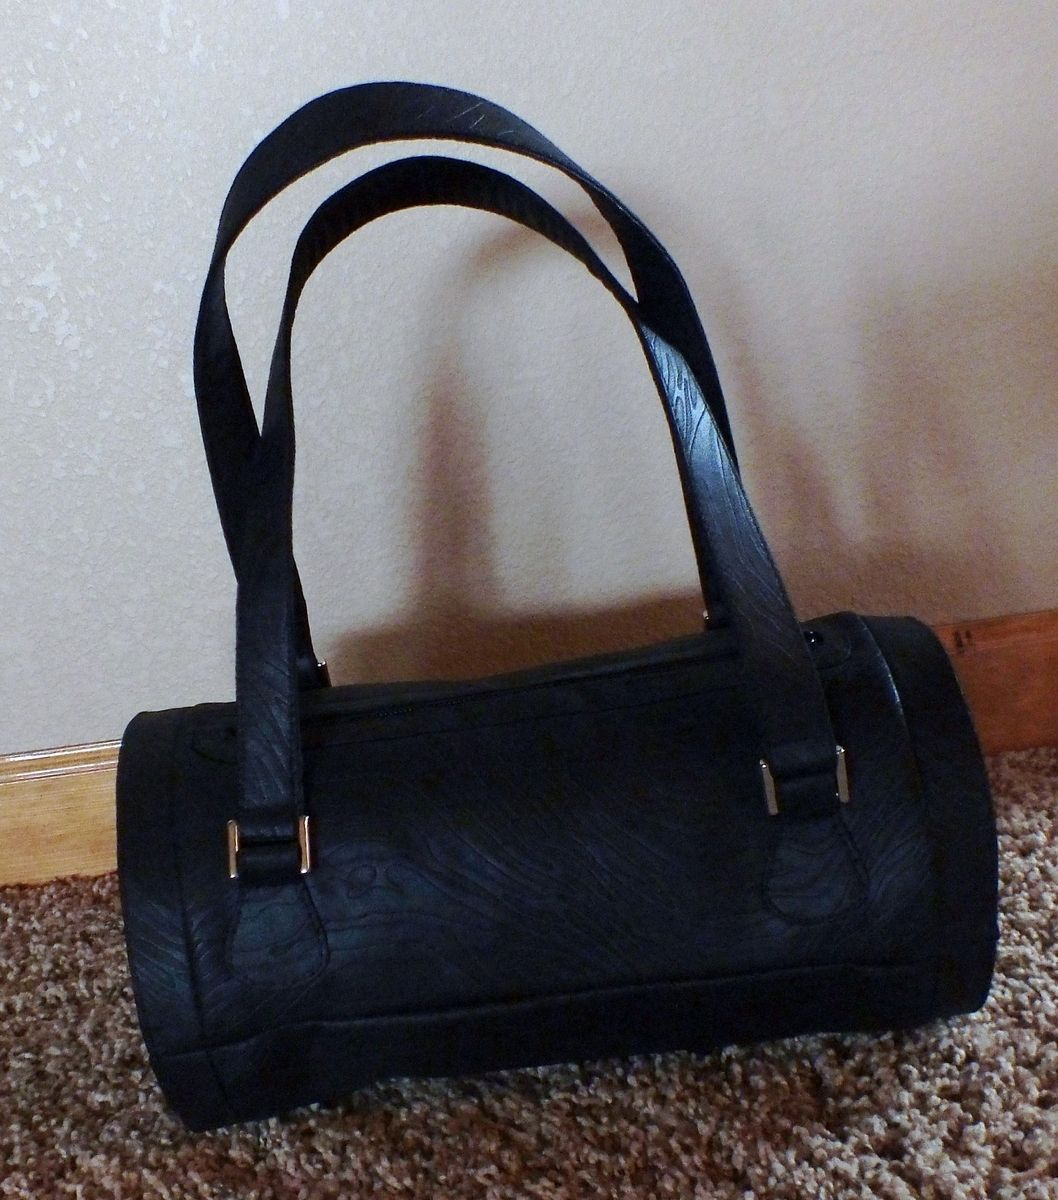 6383e59916 Custom Barrel Bag Purse by Blue Duck Creations